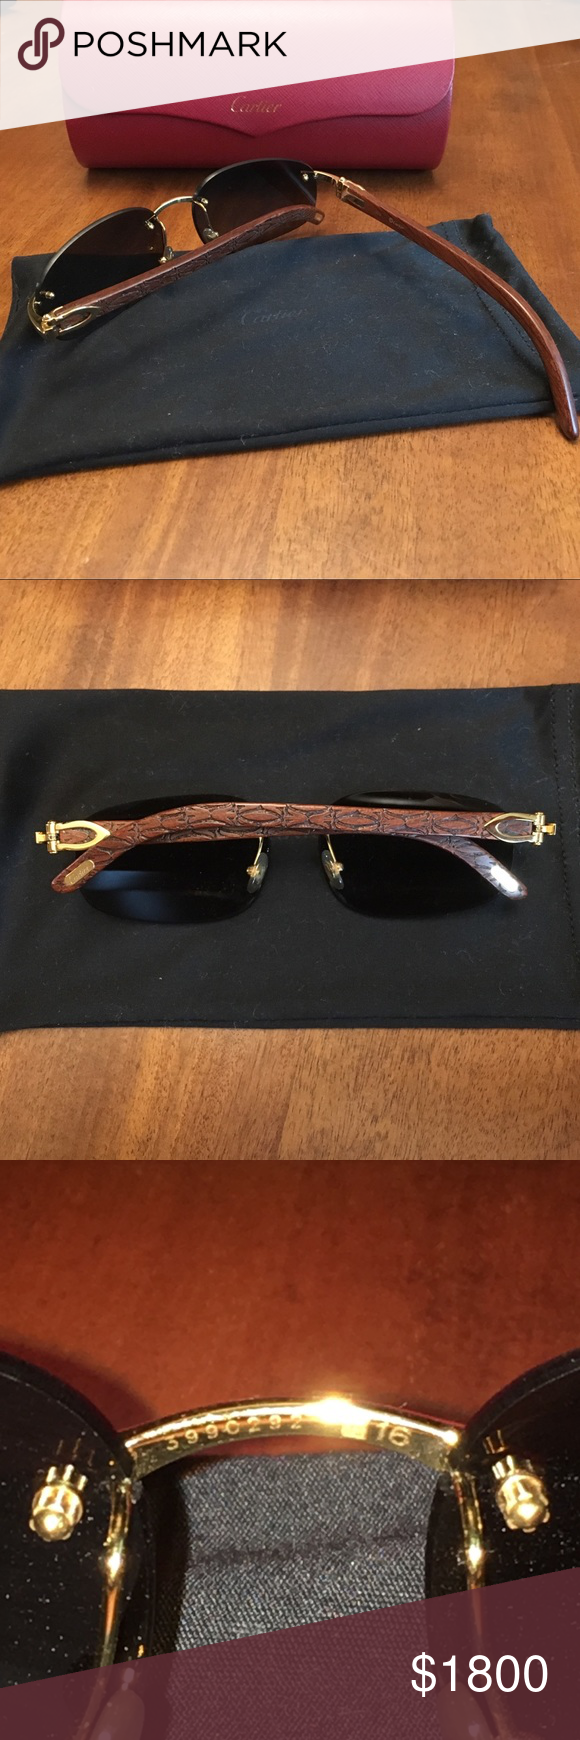 Cartier sunglasses | Cartier, Customer support and Gold